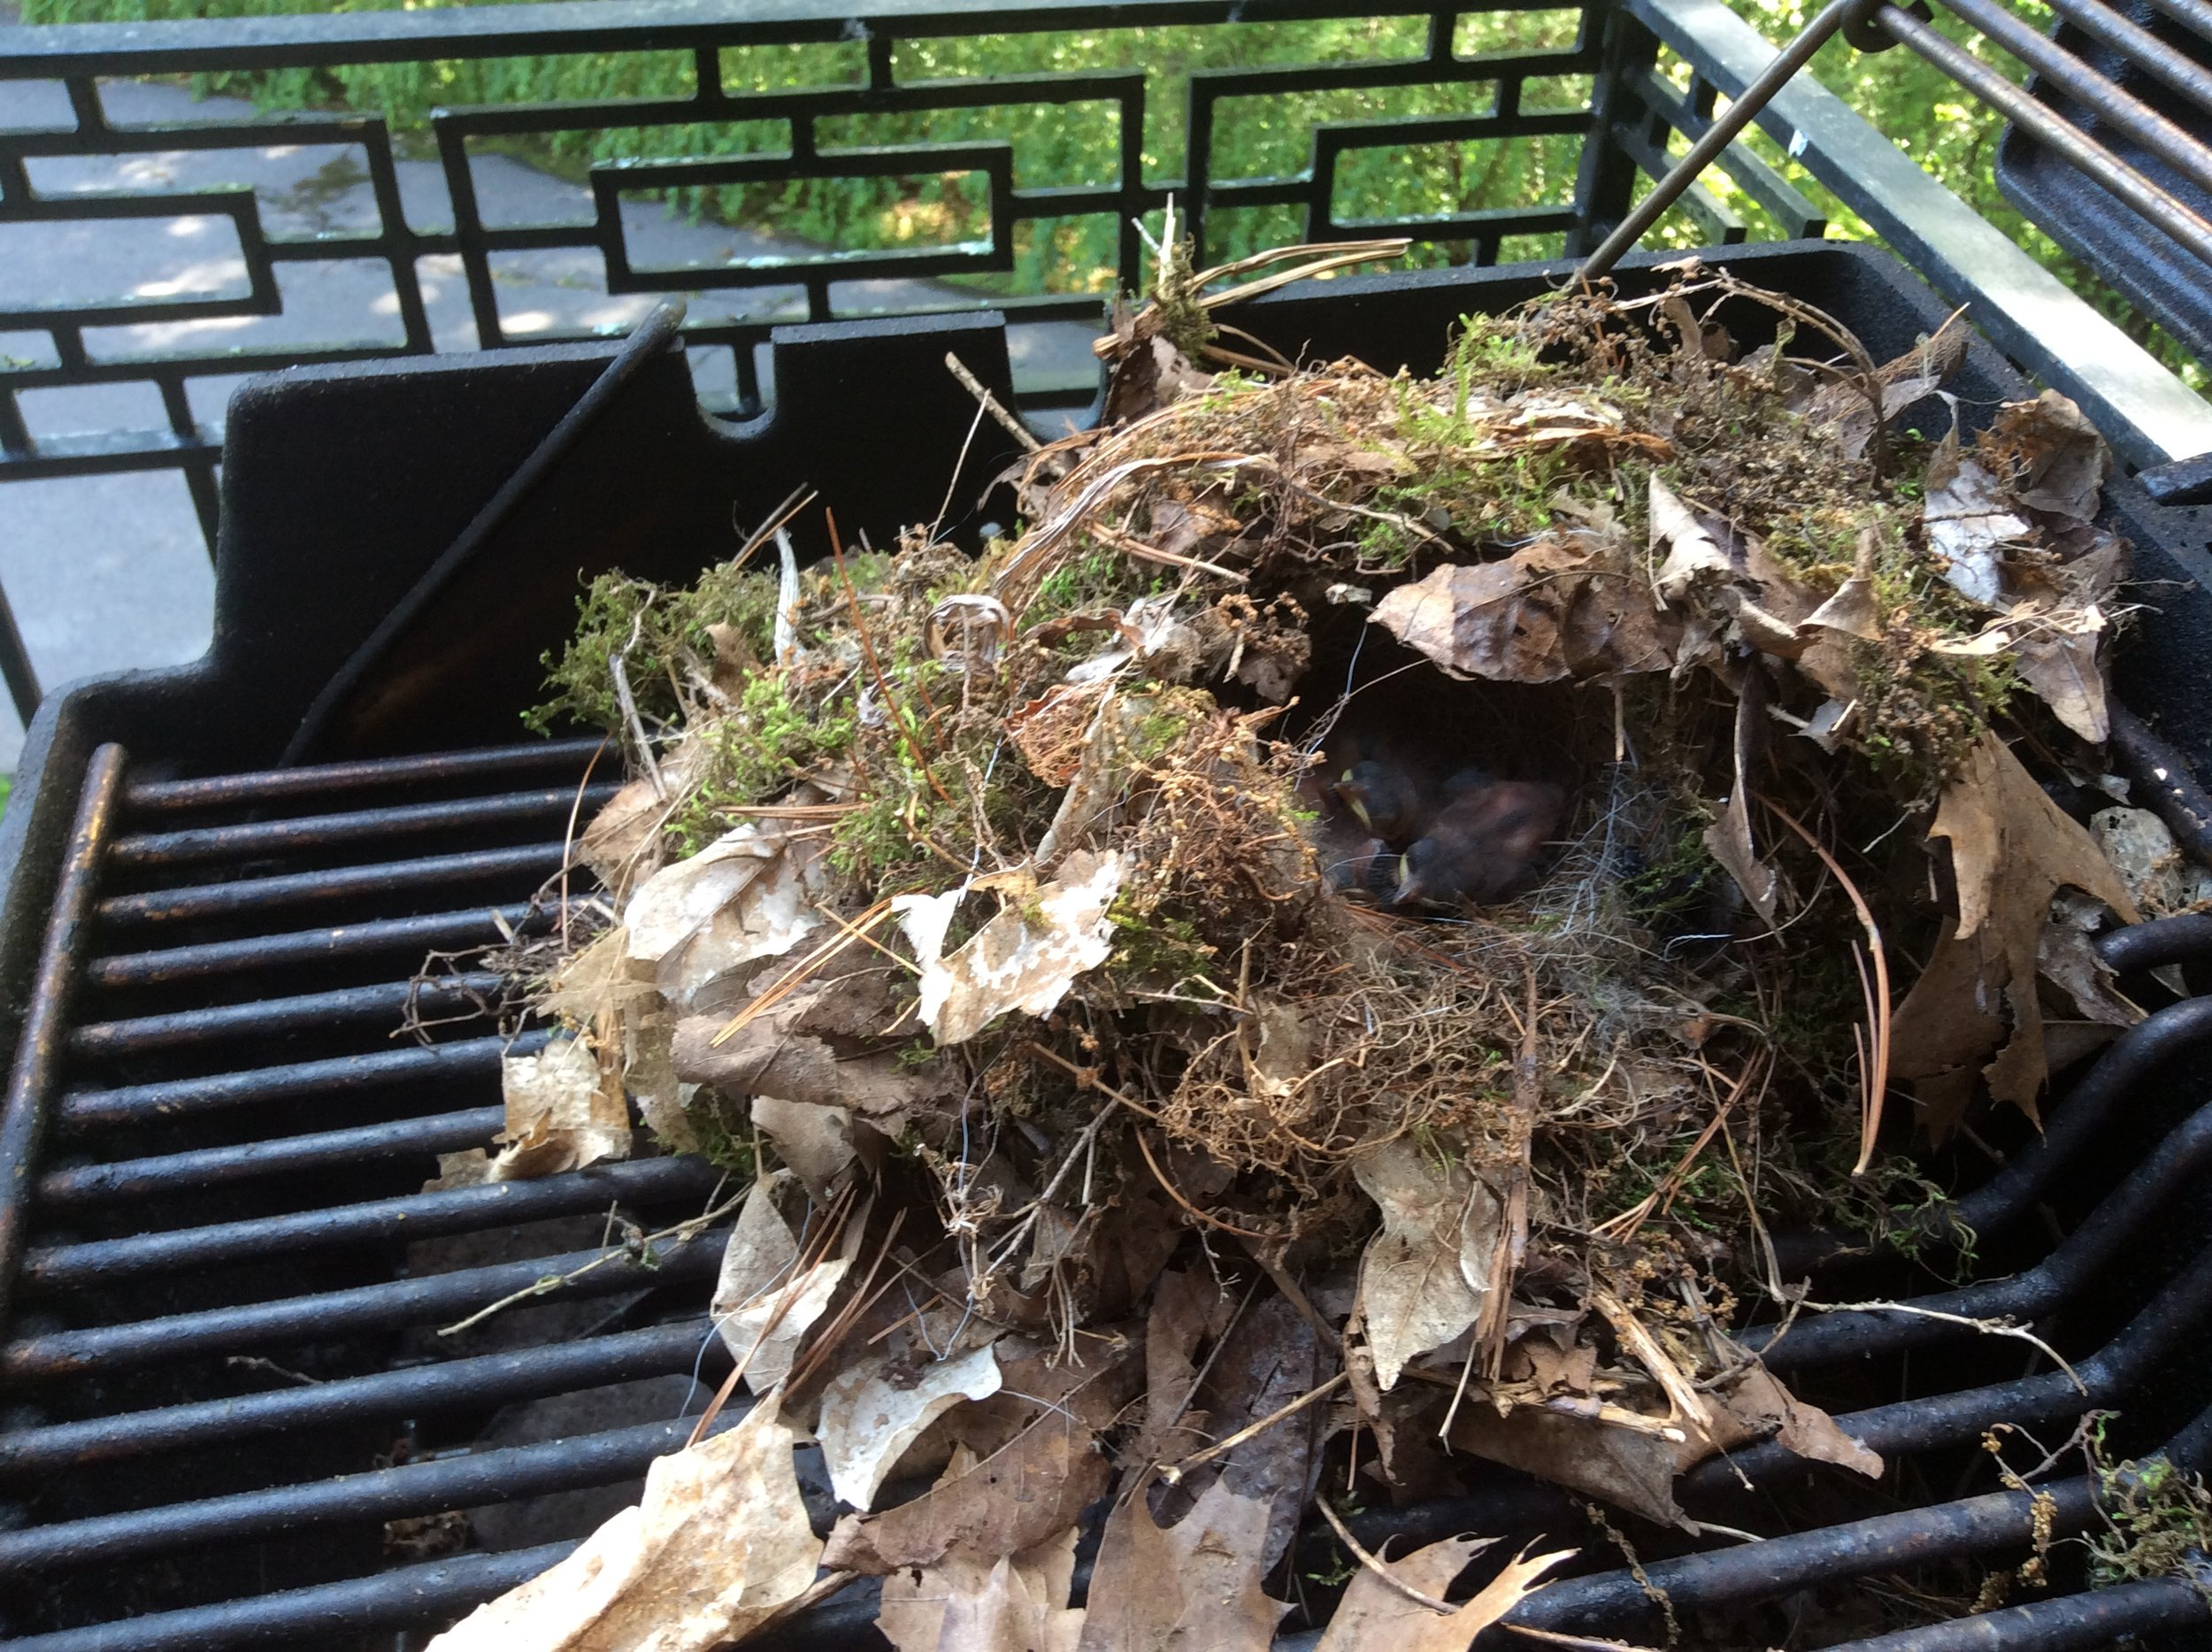 Carolina Wren nest in BBQ grill by Shelley Page